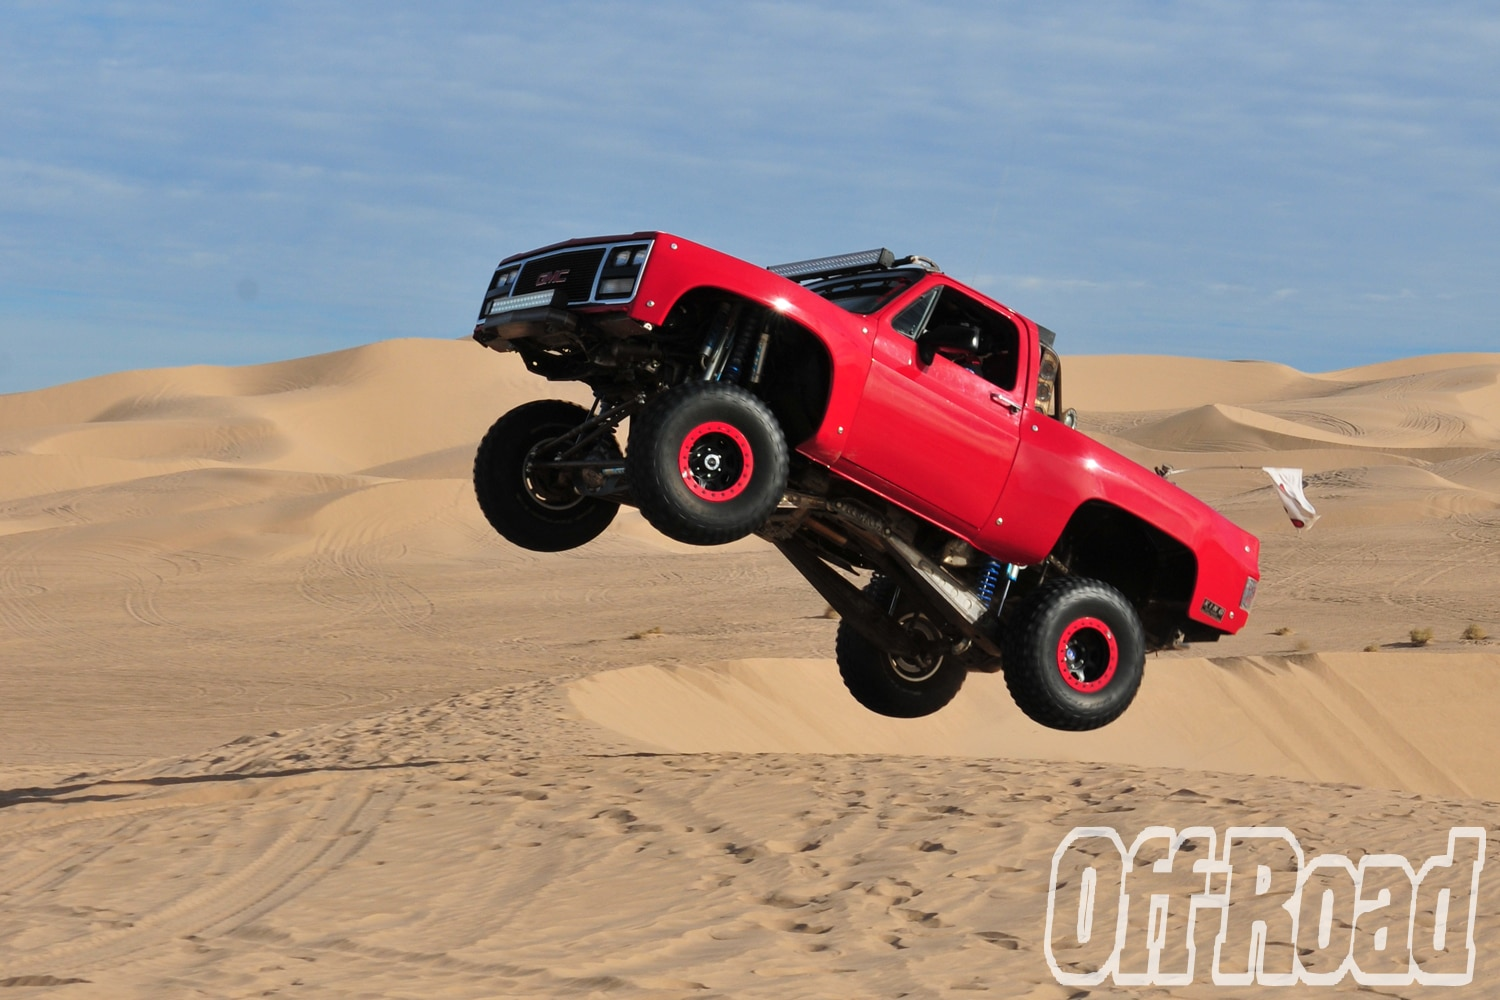 1991 GMC K5 Jimmy Glamis Off Road Magazine Cover Shoot 2